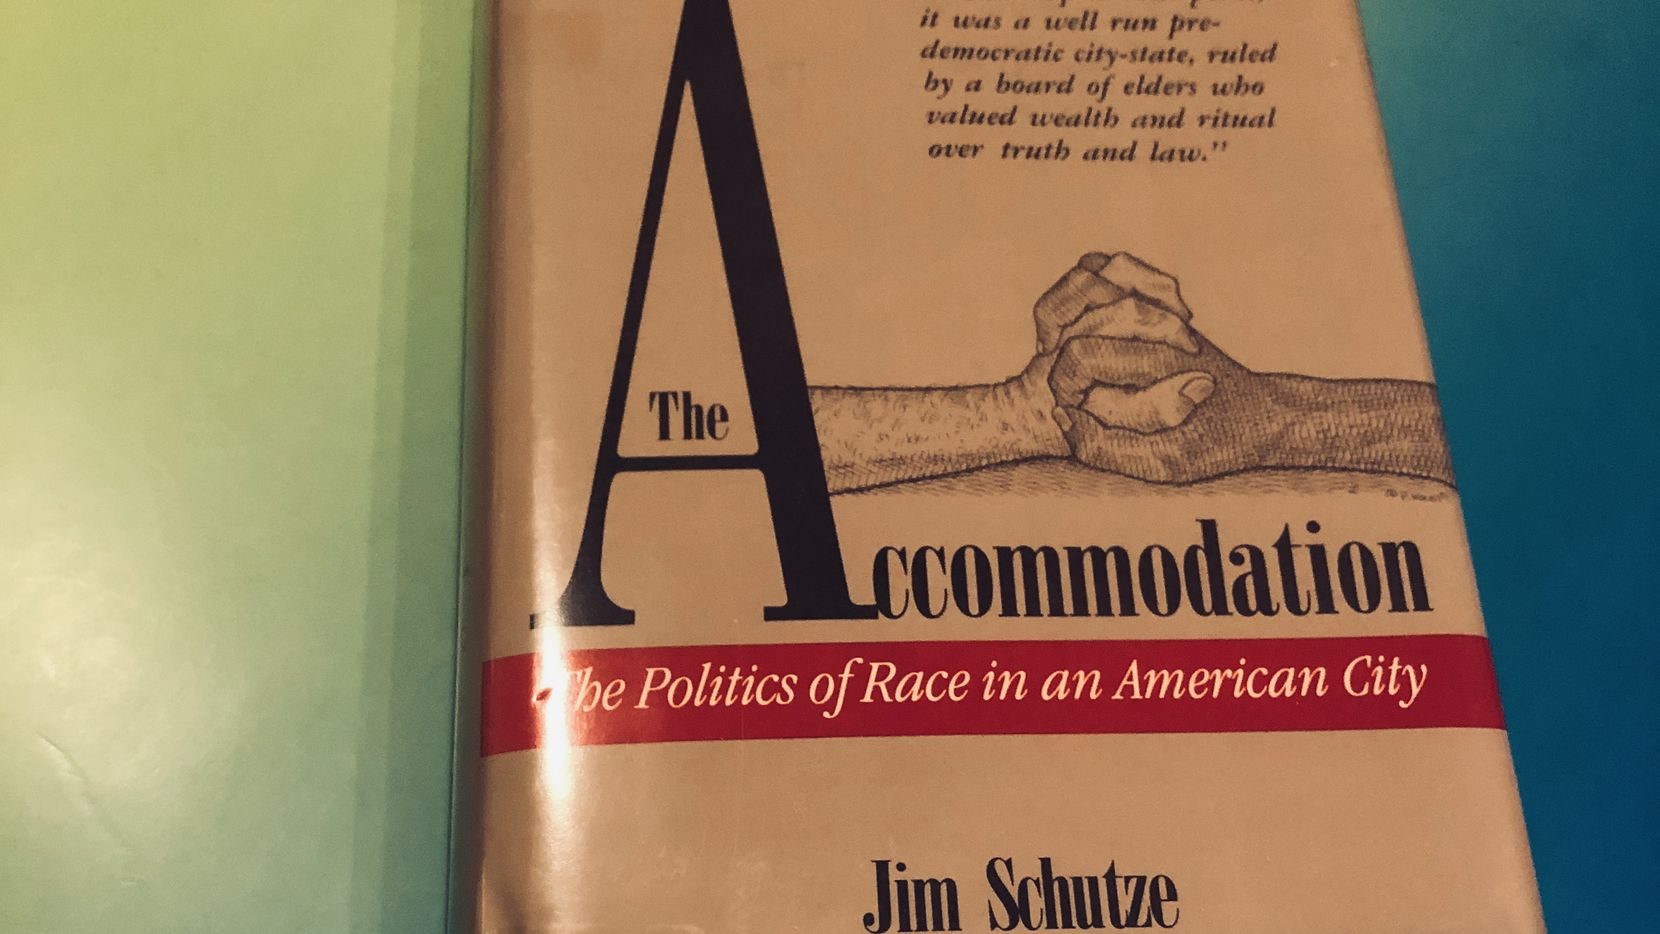 Only 3,000 copies of Jim Schutze's 1986 landmark book on the history of the Dallas civil rights movement, or lack thereof, were offered 35 years ago. Local leaders tried to kill the book. Now, it's out of print, but you can read it on Twitter. And it's being republished.